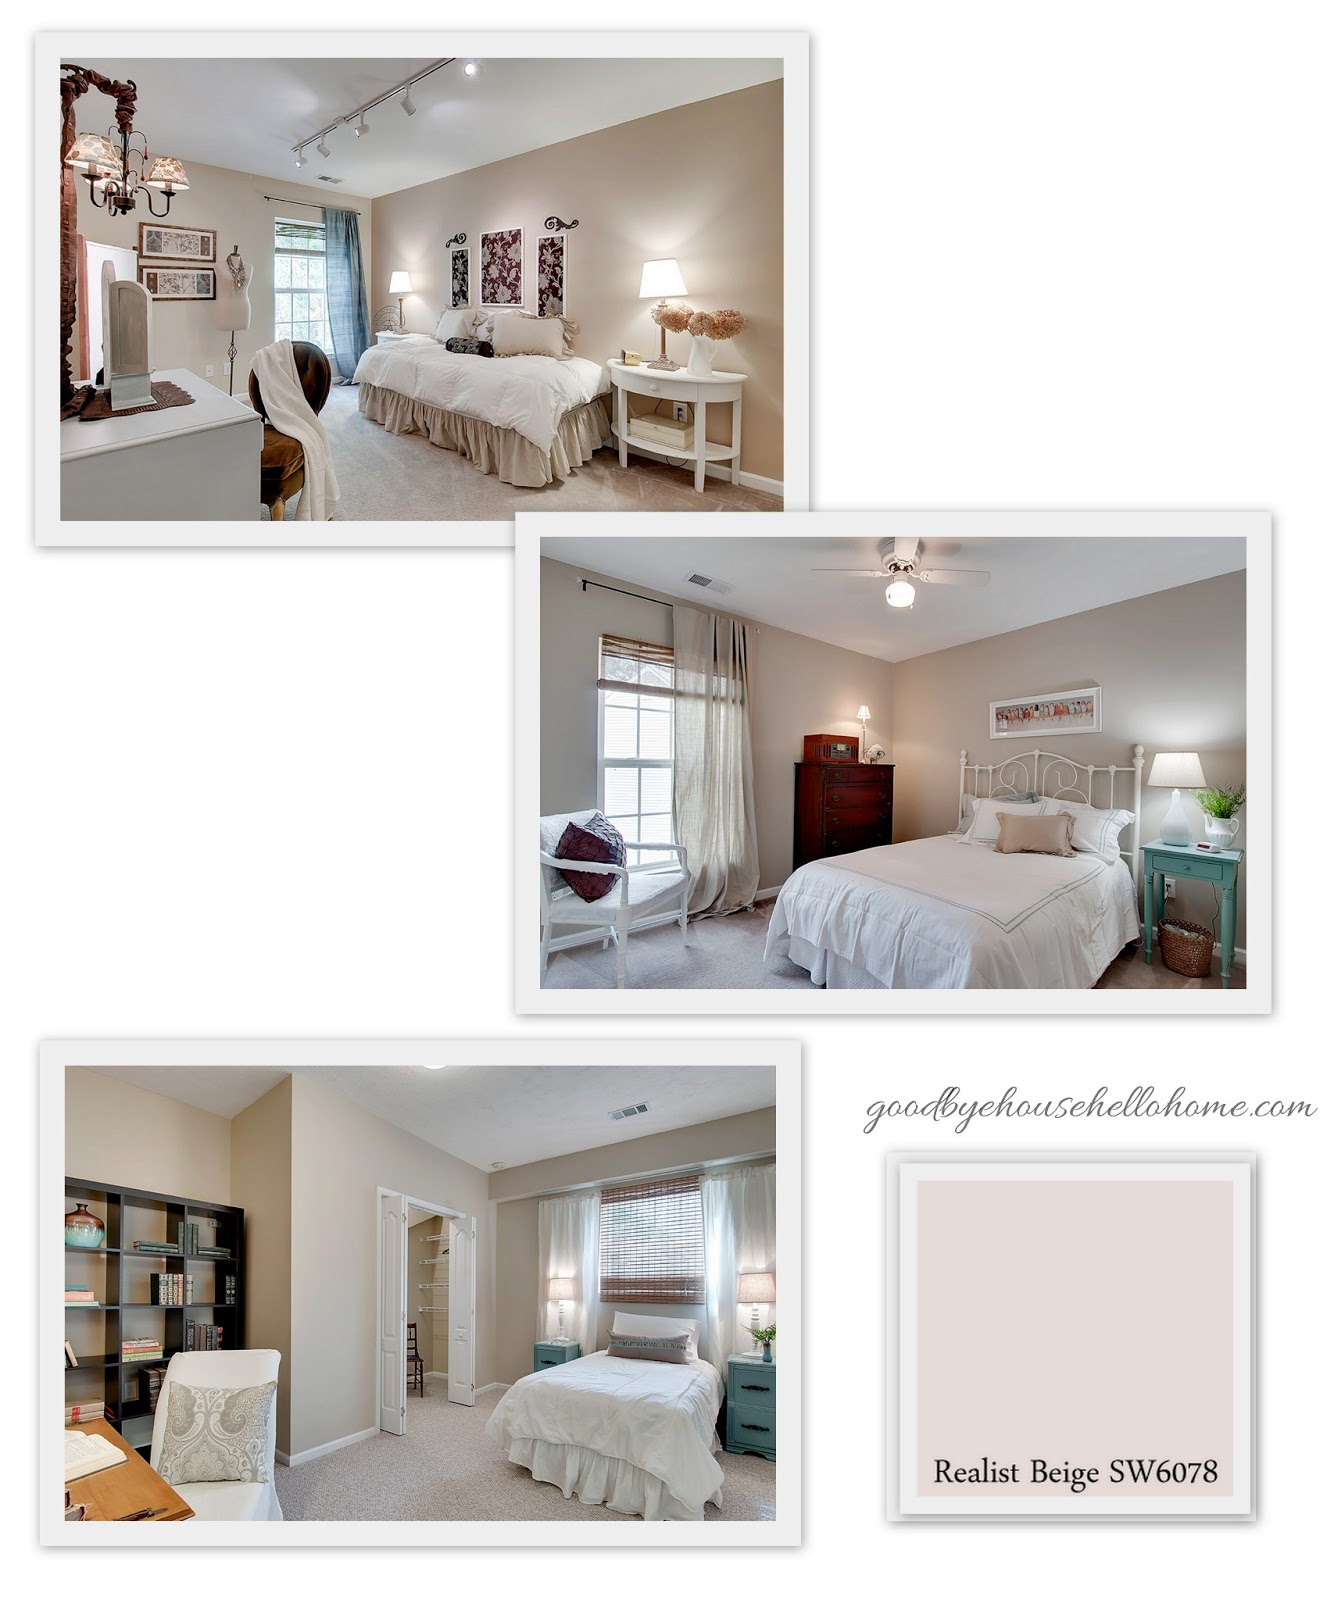 Home Blogs goodbye, house. hello, home! blog : my own staged home :: paint colors